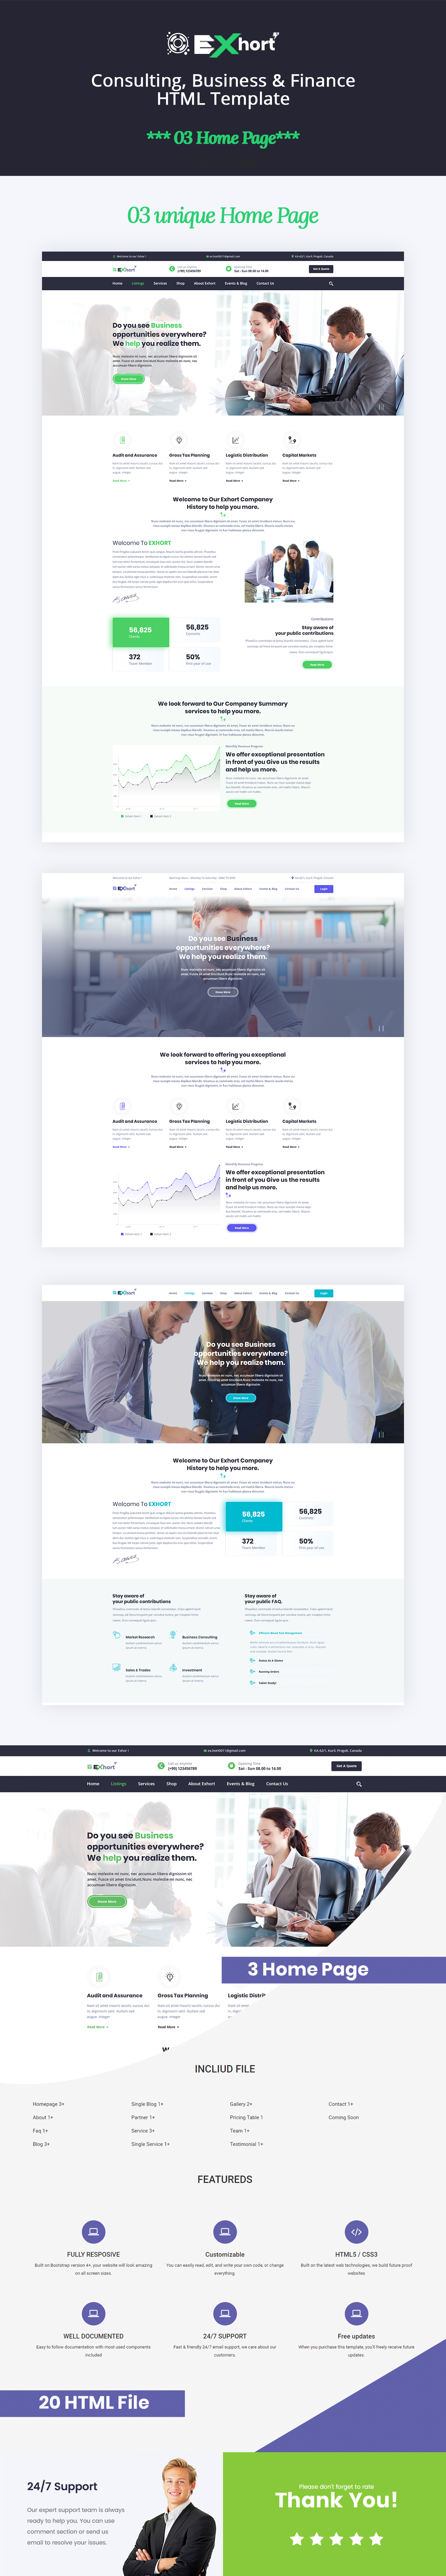 Exhort - Consulting, Finance, Business Bootstrap 4 Template  Consulting Business Bootstrap 4 HTML Template by themepul 687474703a2f2f696e74726f2e7468656d6570756c2e636f6d2f696d672f6578686f72742e6a7067